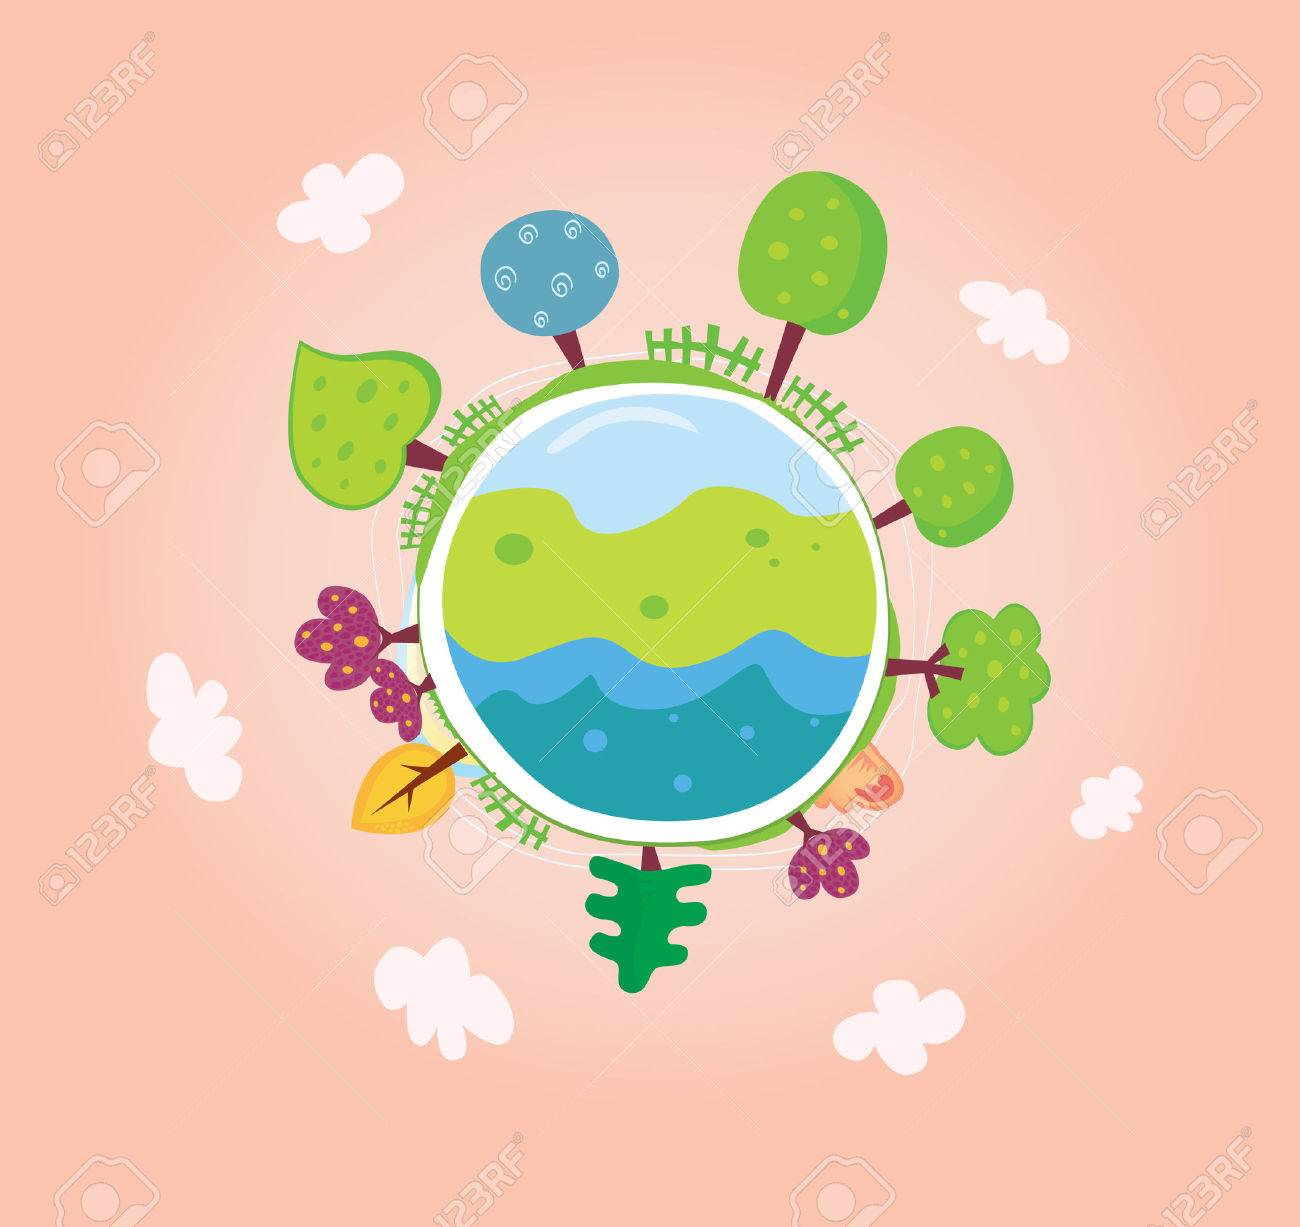 Green planet. We are going to rescue our planet! More trees everywhere. Green globe, VECTOR. Stock Vector - 5255269